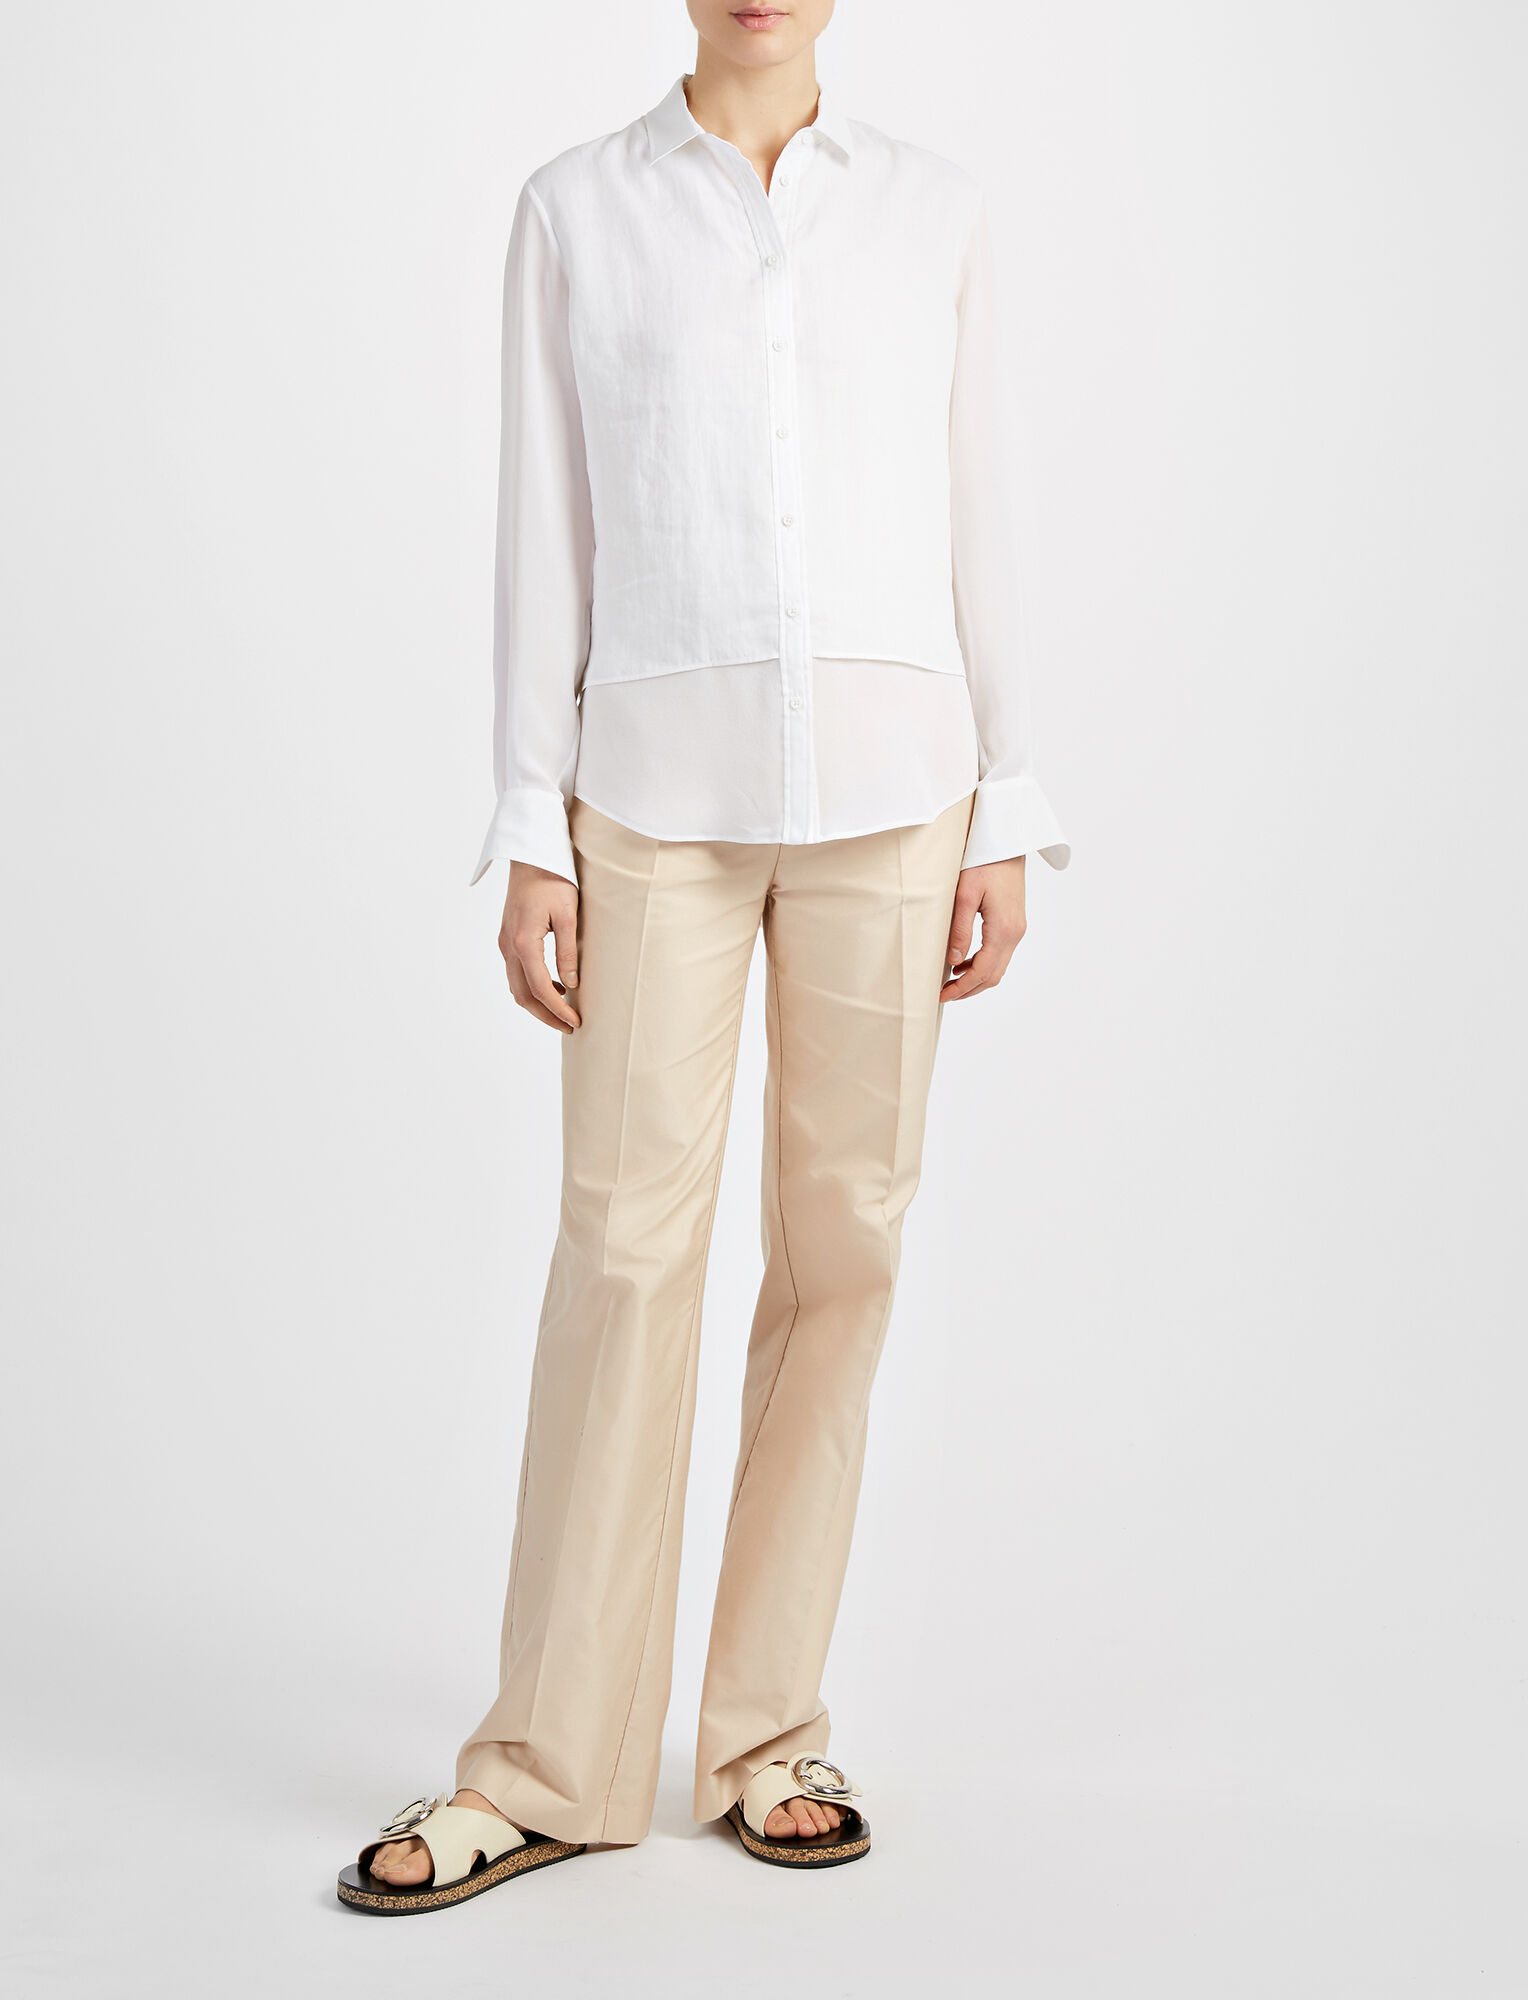 Joseph, Ramie Voile Gracie Blouse, in WHITE